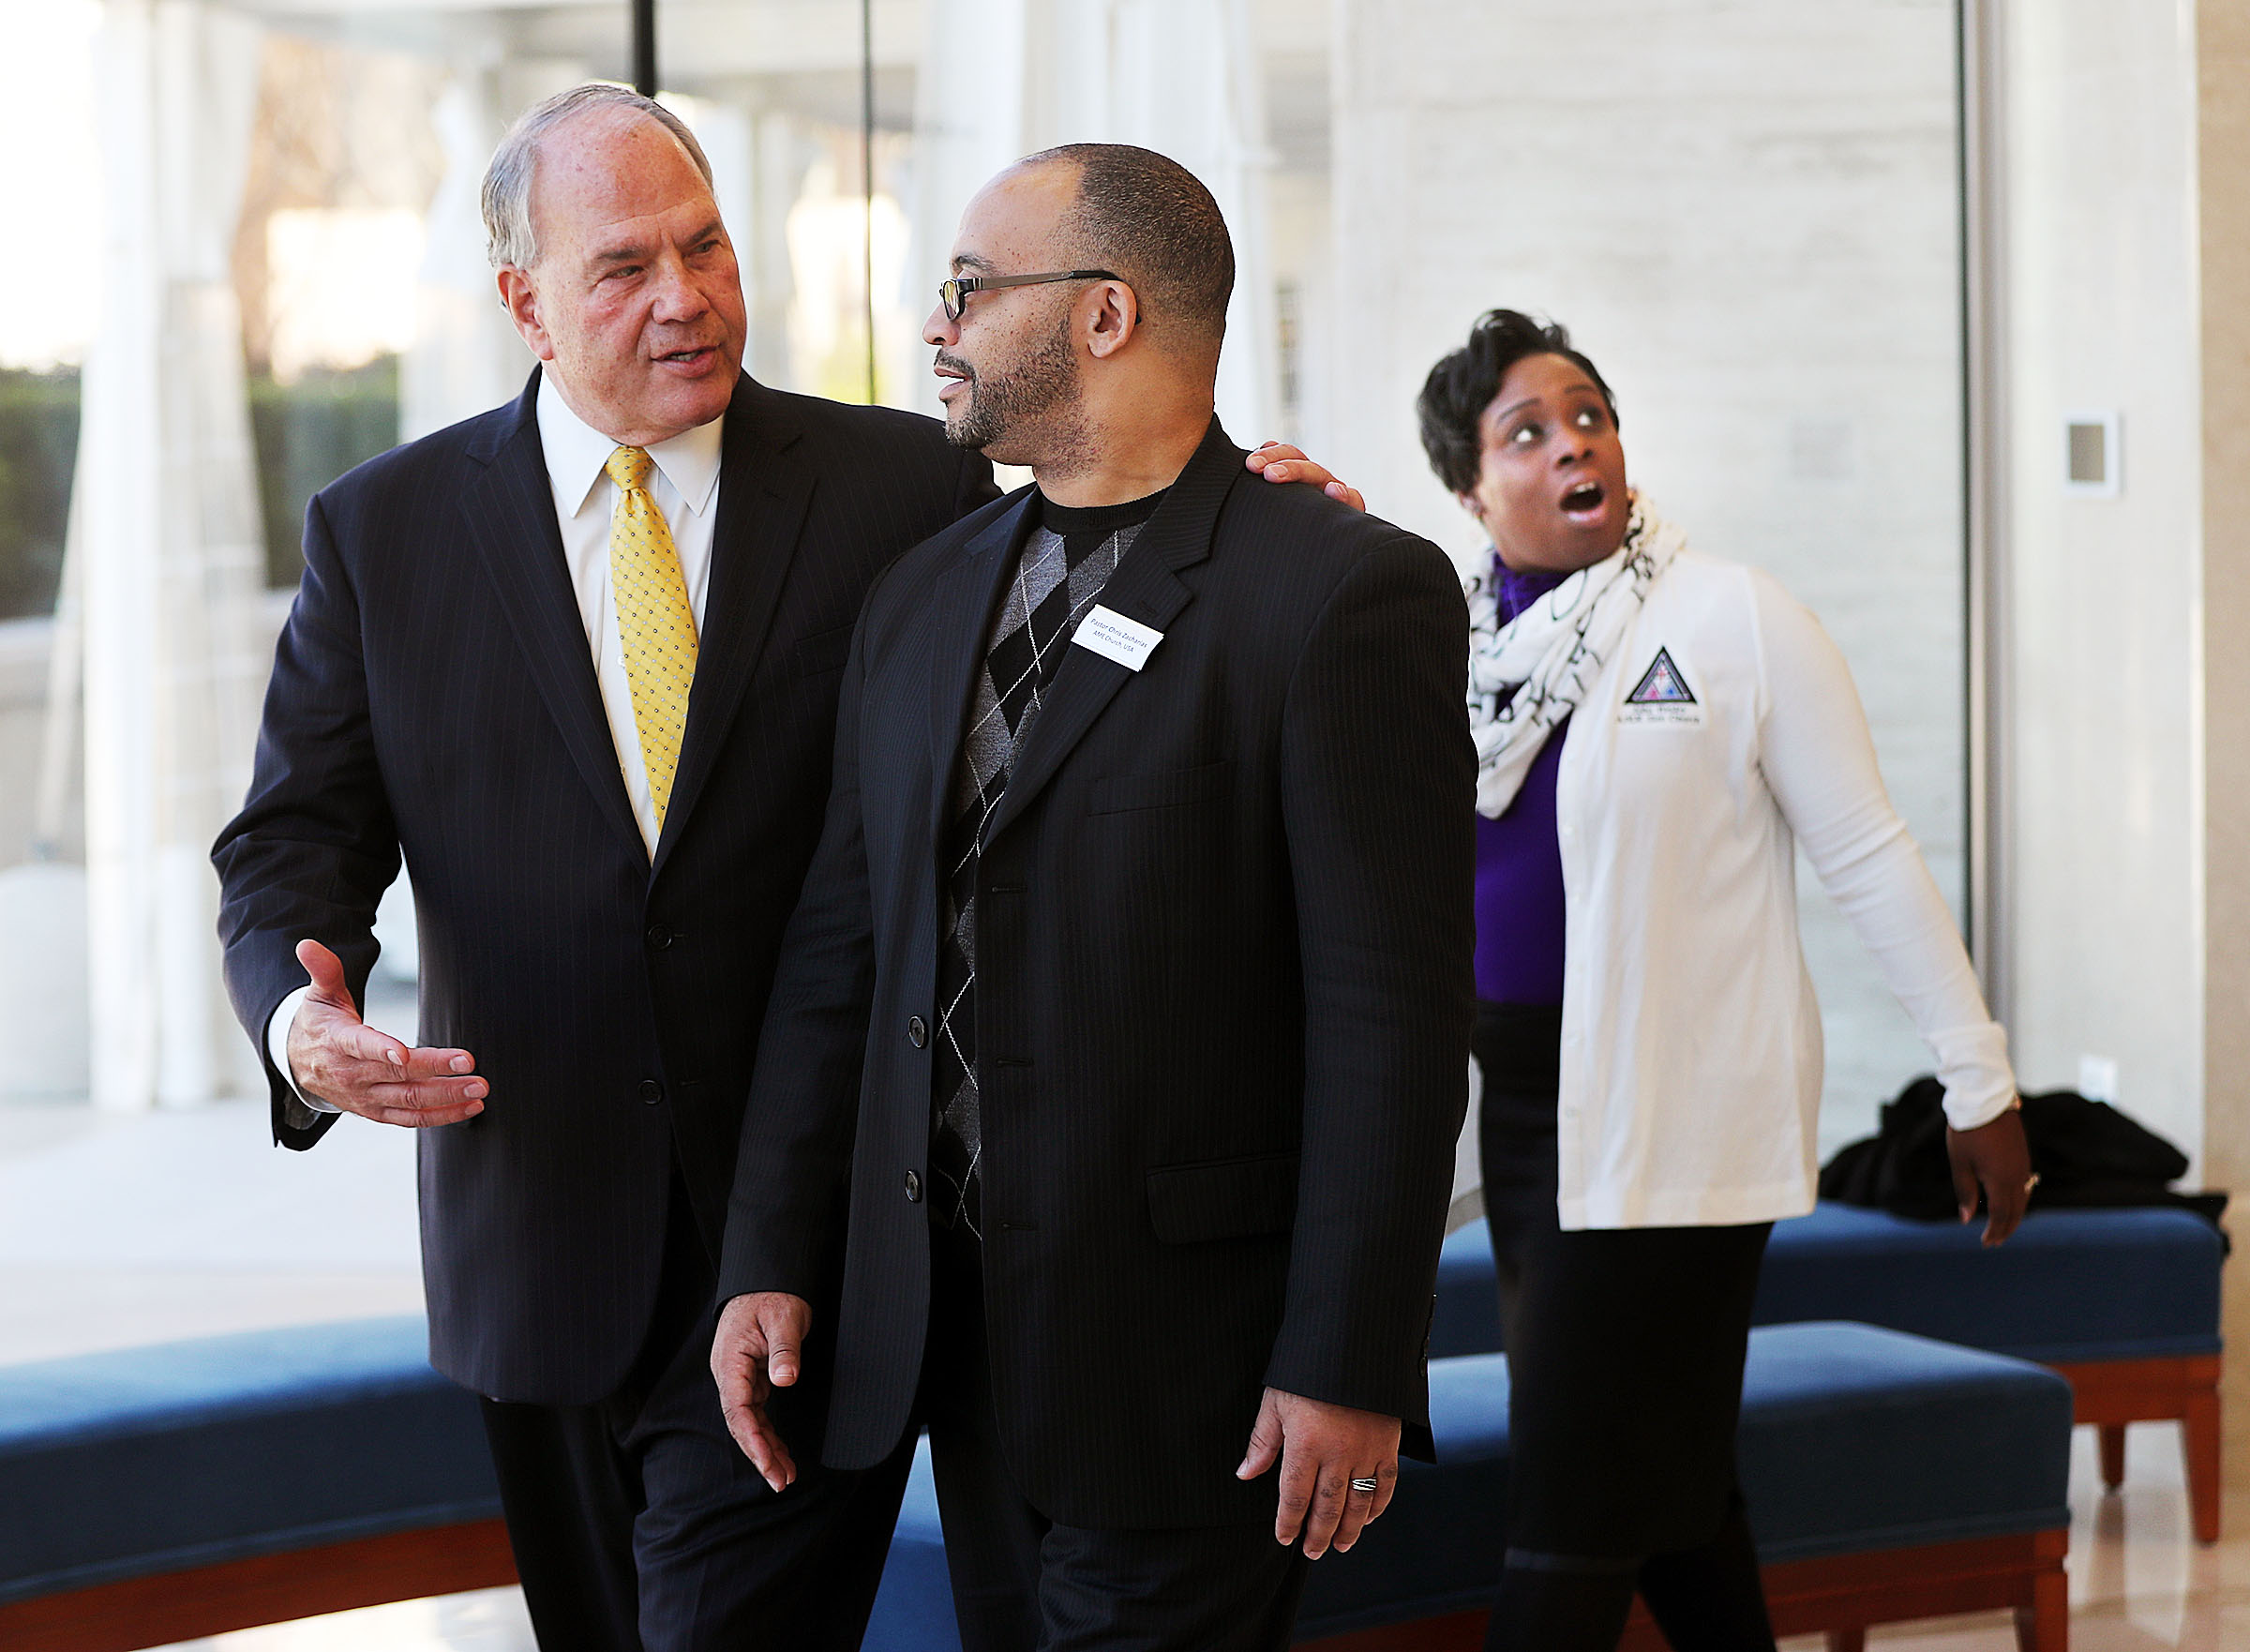 Elder Ronald A. Rasband, left, of The Quorum of the Twelve Apostles of The Church of Jesus Christ of Latter-day Saints, talks with Pastor Chris Zacharias of the John Wesley A.M.E. Zion Church as they tour the Rome Temple Visitors' Center on Tuesday, Jan. 15, 2019. Behind them, Pastor Zarharias' wife Kim looks at the Christus statue.